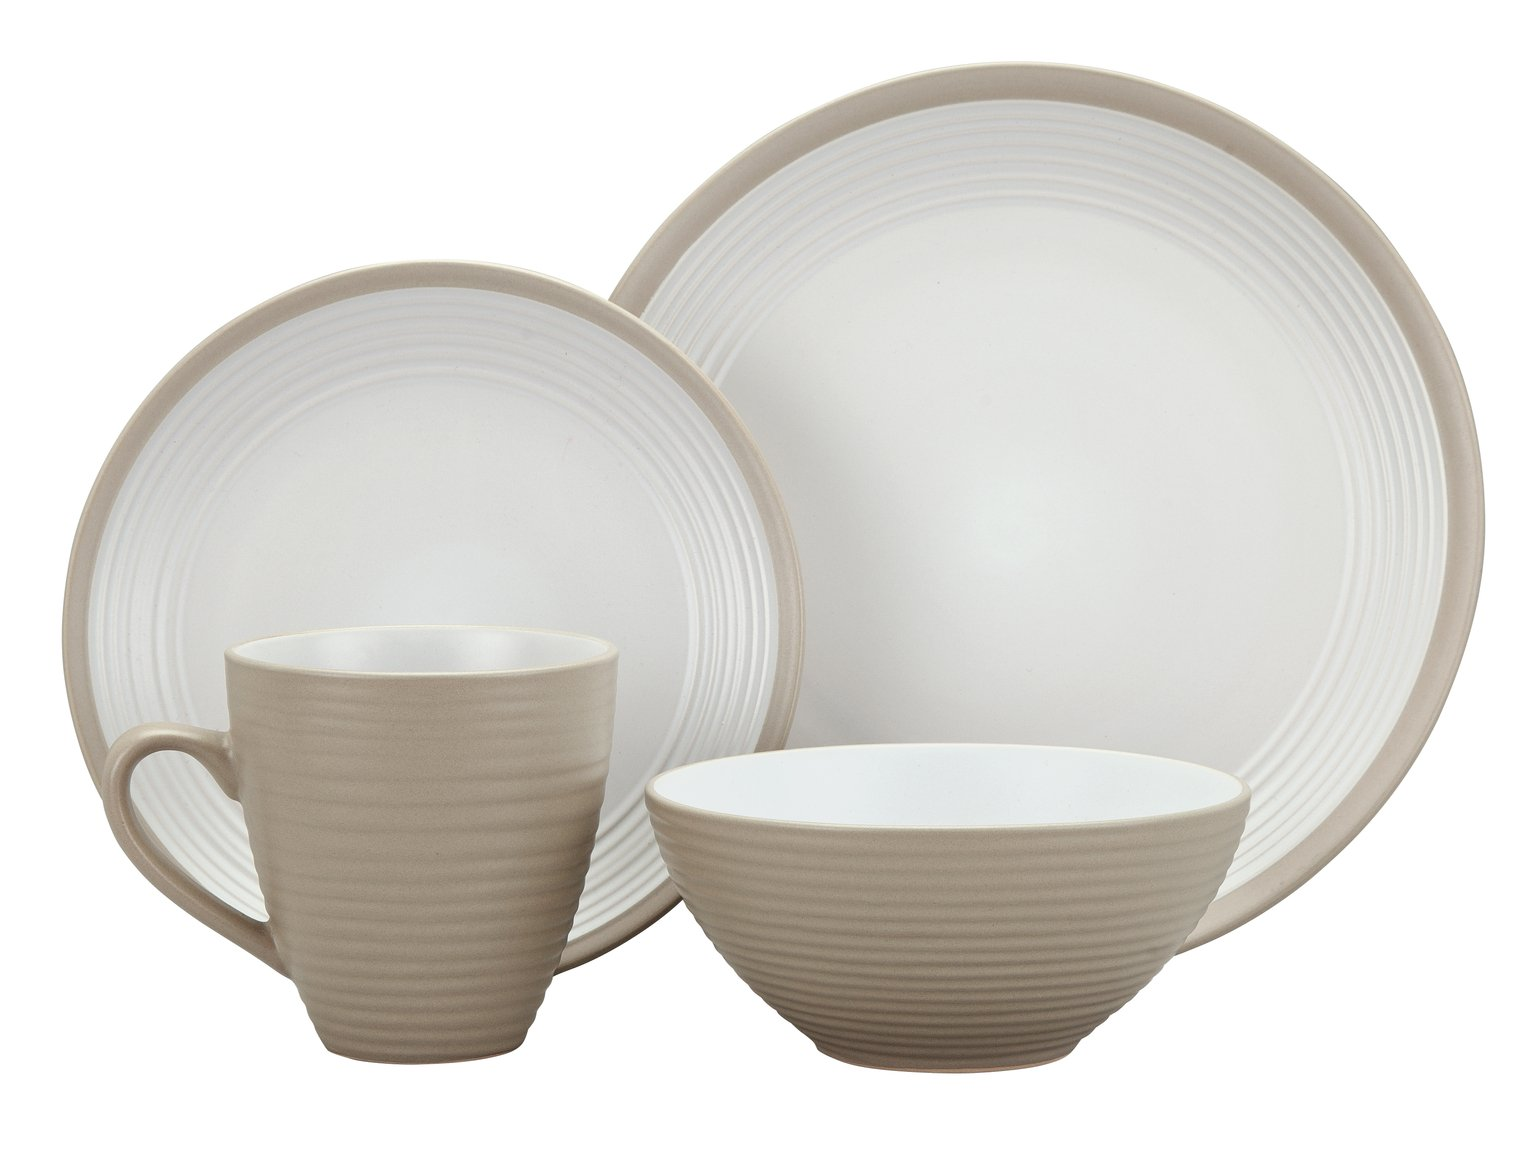 Argos Home Ribbed 16 Piece Dinner Set - Warm Natural